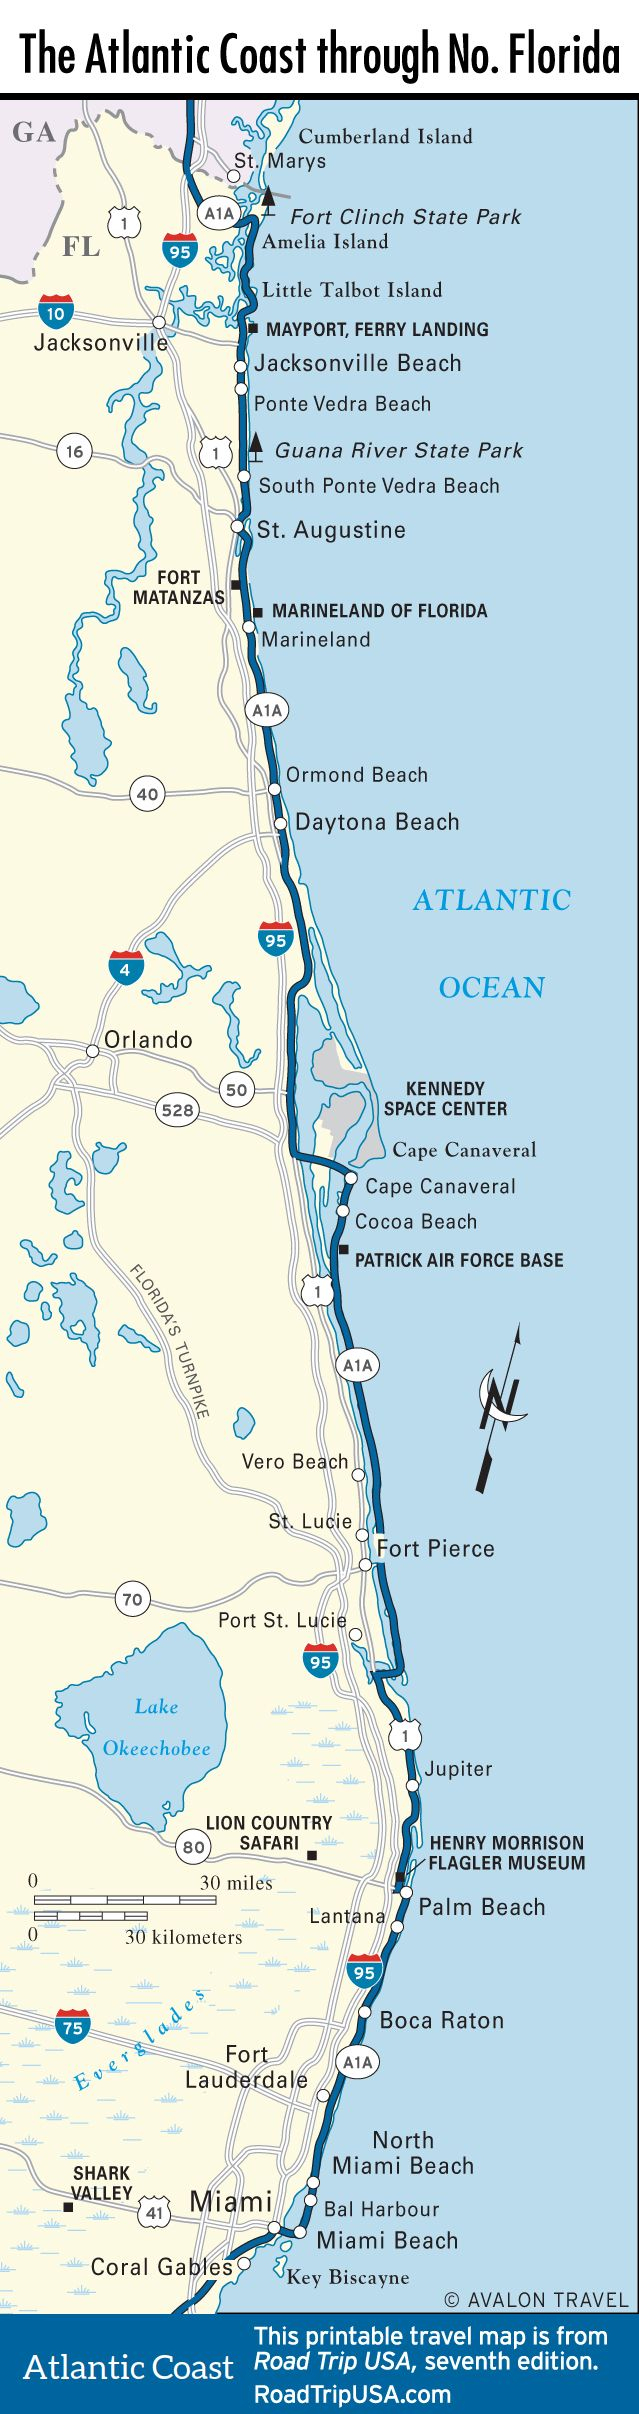 Map Of The Atlantic Coast Through Northern Florida. | Florida A1A - Map Of Florida East Coast Beach Towns